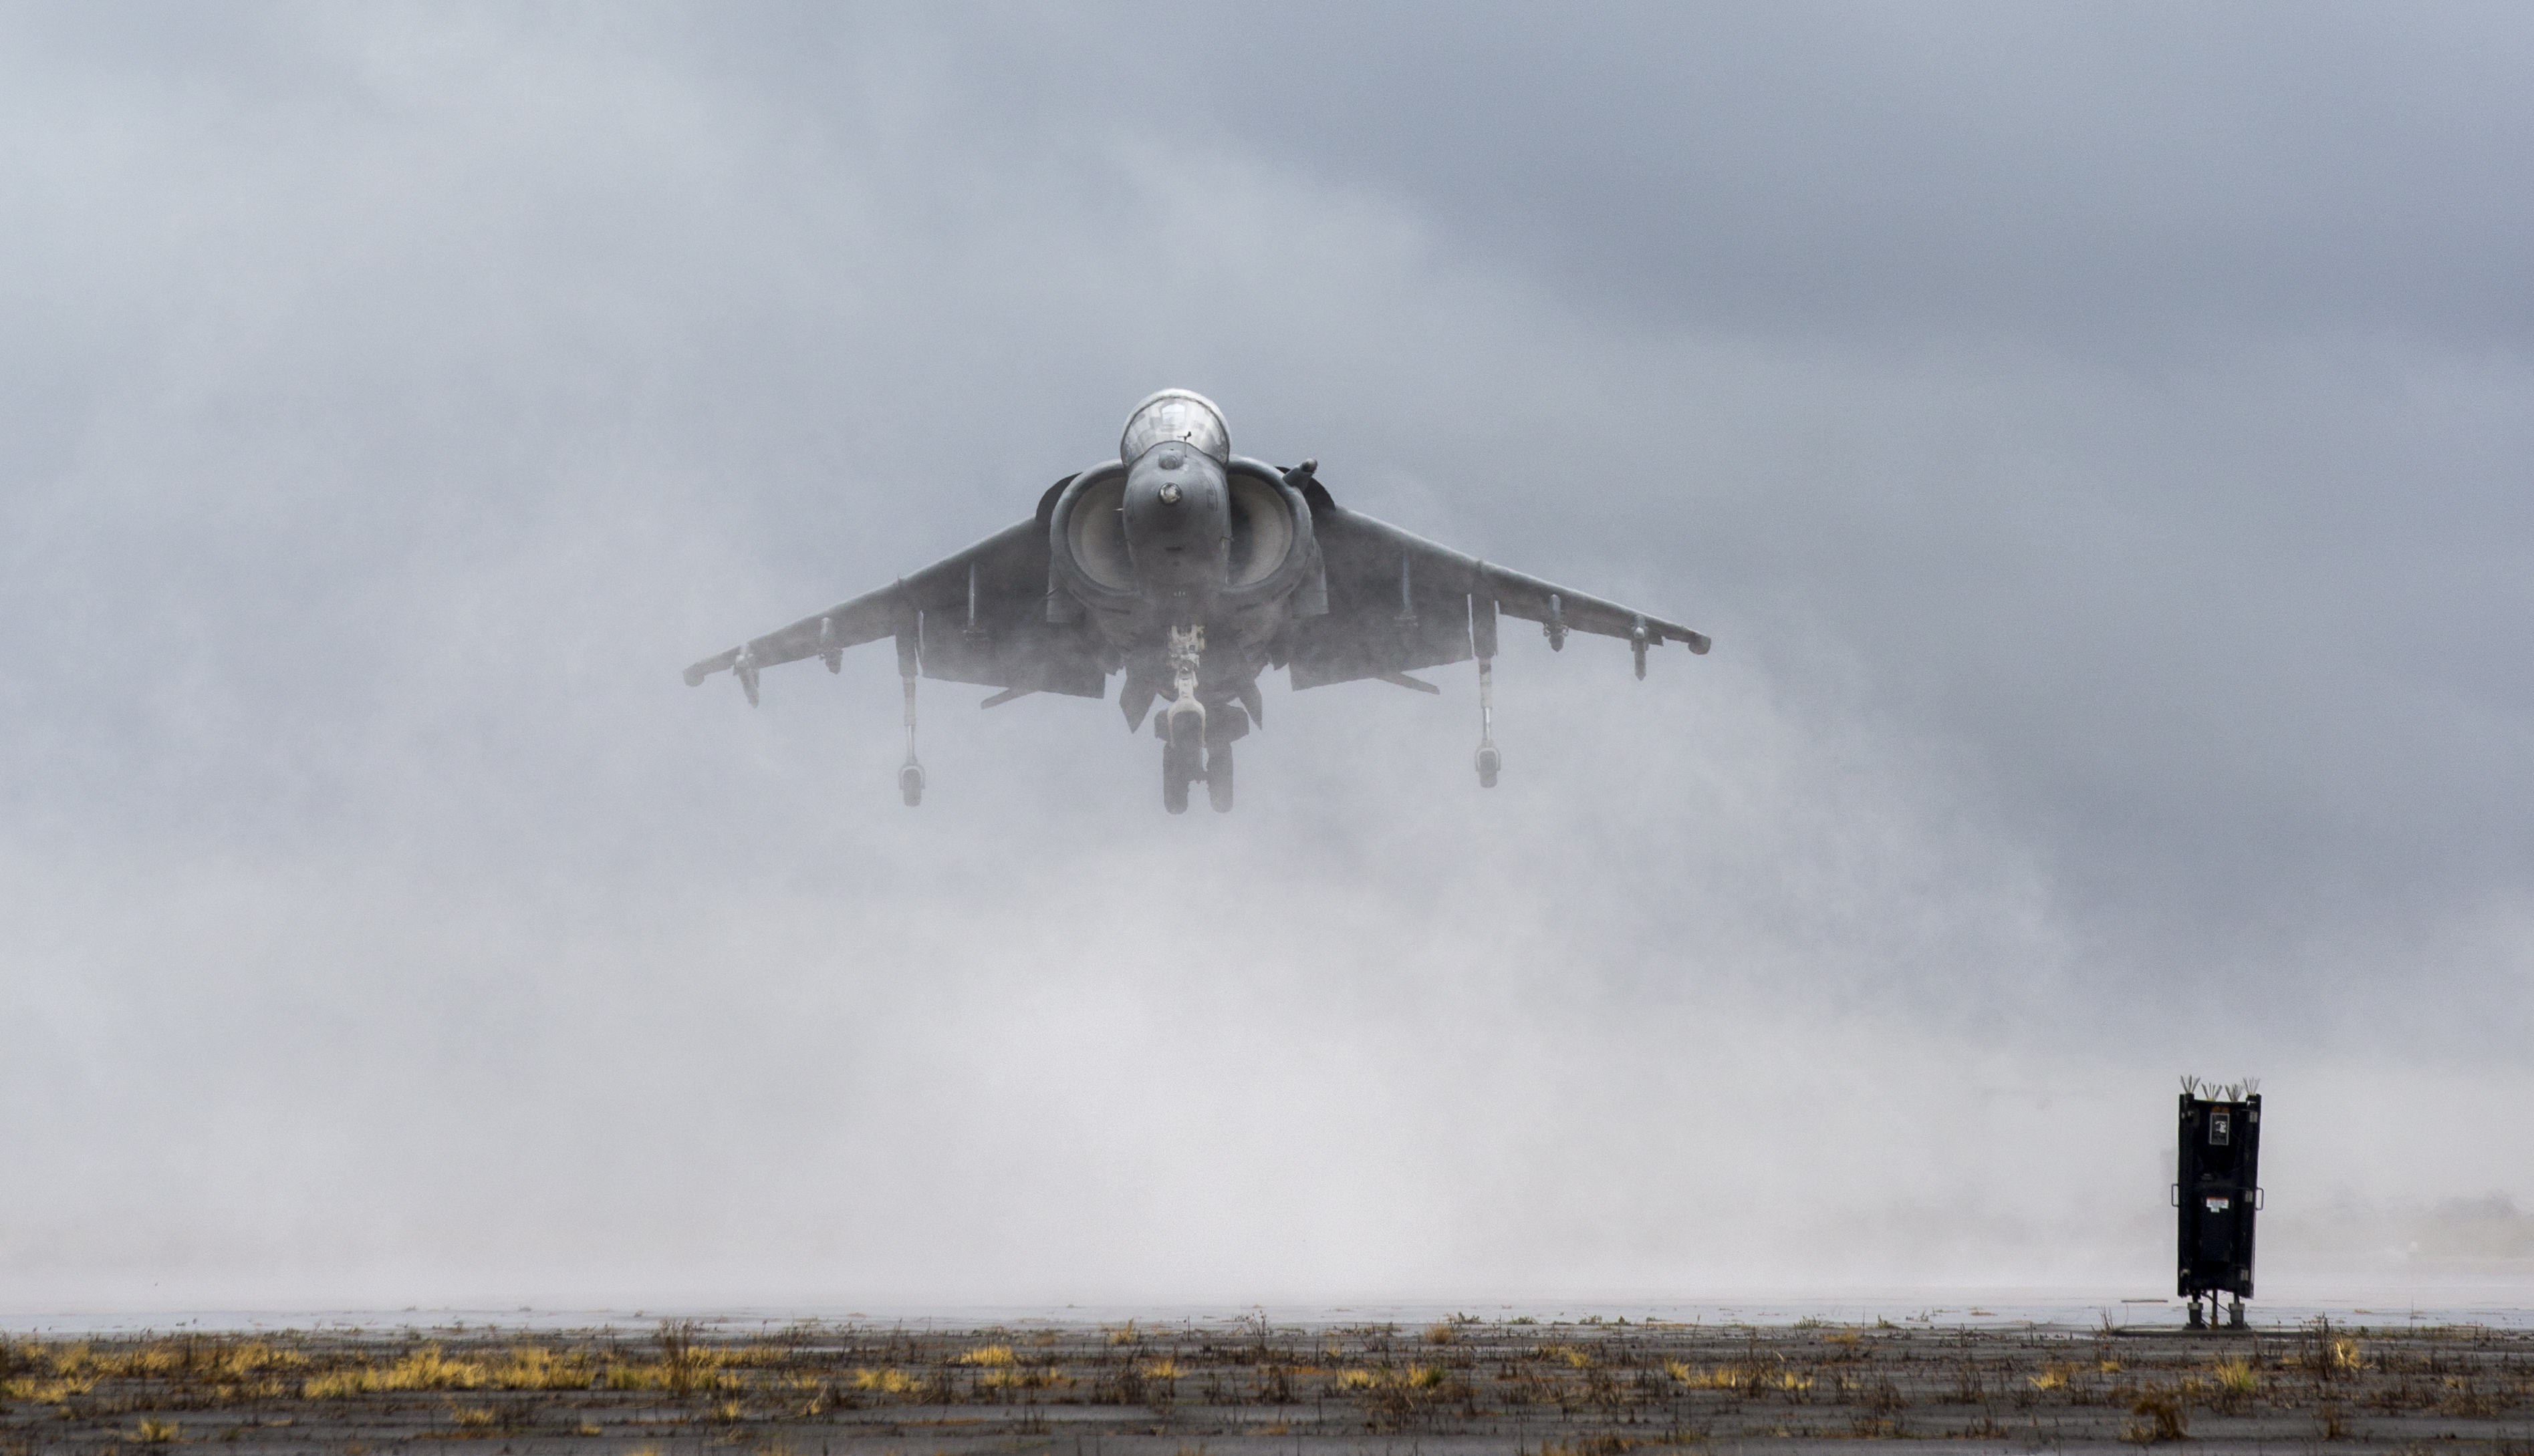 An AV-8B Harrier hovers during the Marine Corps Community Services sponsored 2015 Air Show aboard Marine Corps Air Station Miramar, San Diego, Calif., Oct. 4, 2015. The air show showcases civilian performances and the aerial prowess of the armed forces but also, their appreciation of the civilian community's support and dedication to the troops.